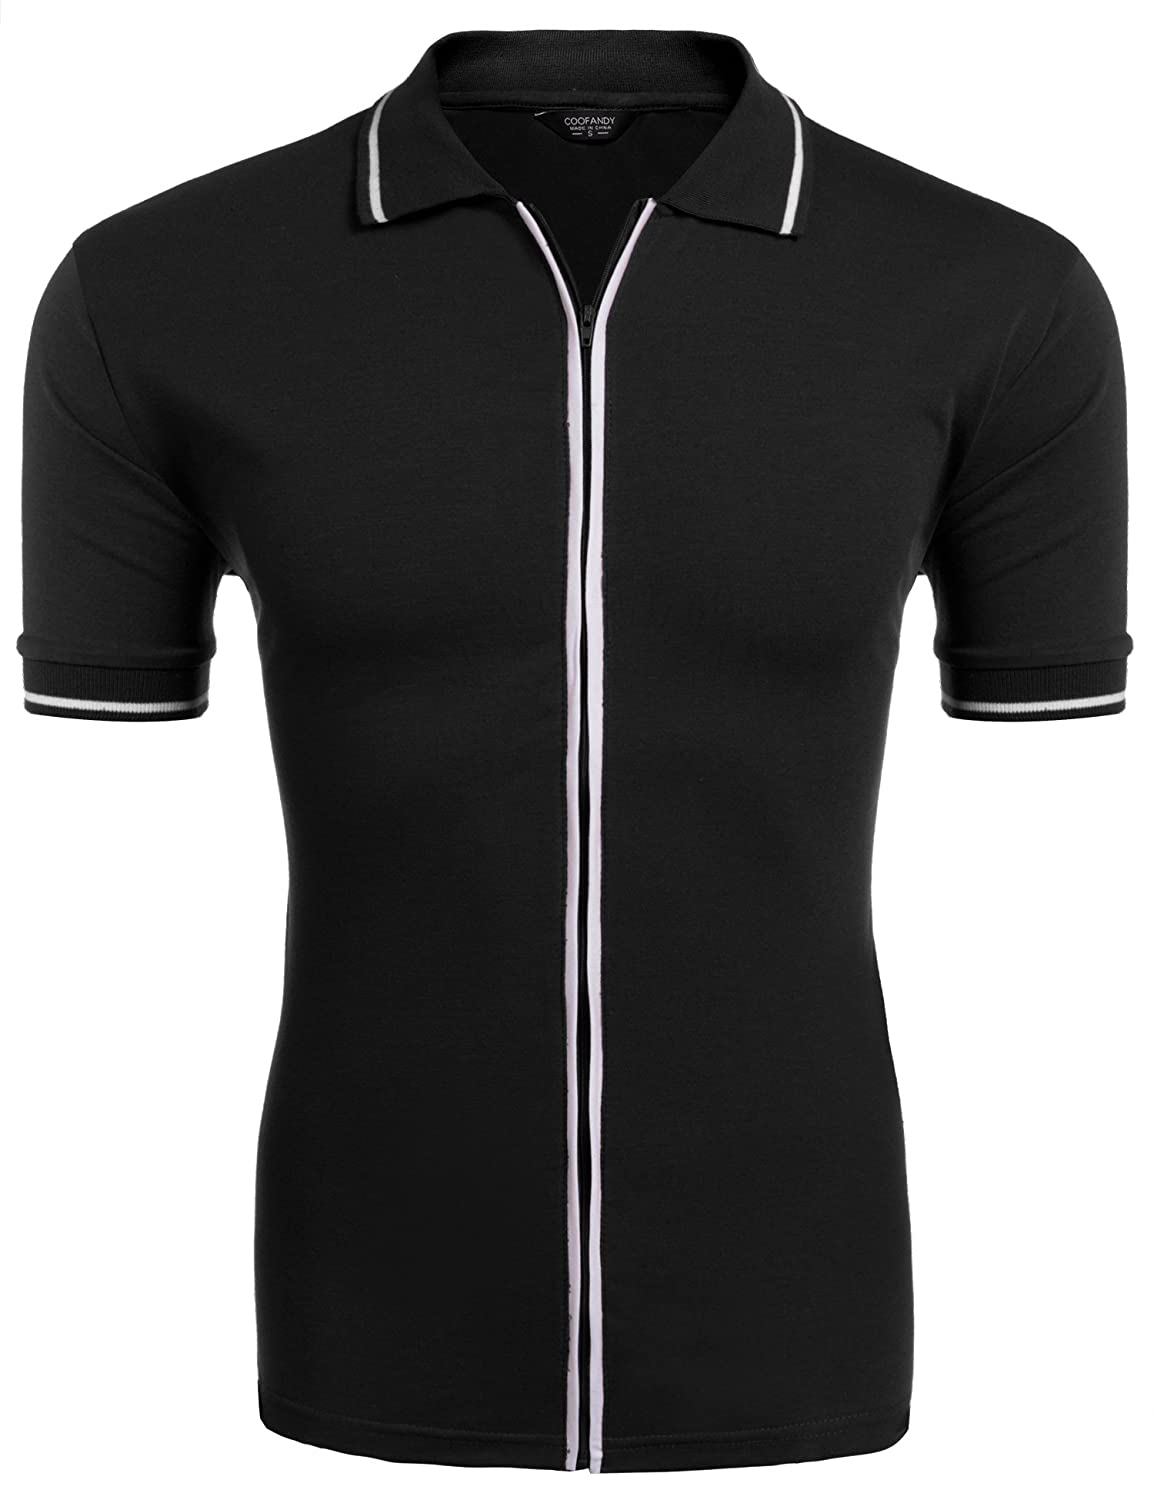 Mens Vintage Shirts – Casual, Dress, T-shirts, Polos COOFANDY Mens Full Zip Polo Shirt Slim Fit Casual Cotton Contrast T Shirts $19.99 AT vintagedancer.com